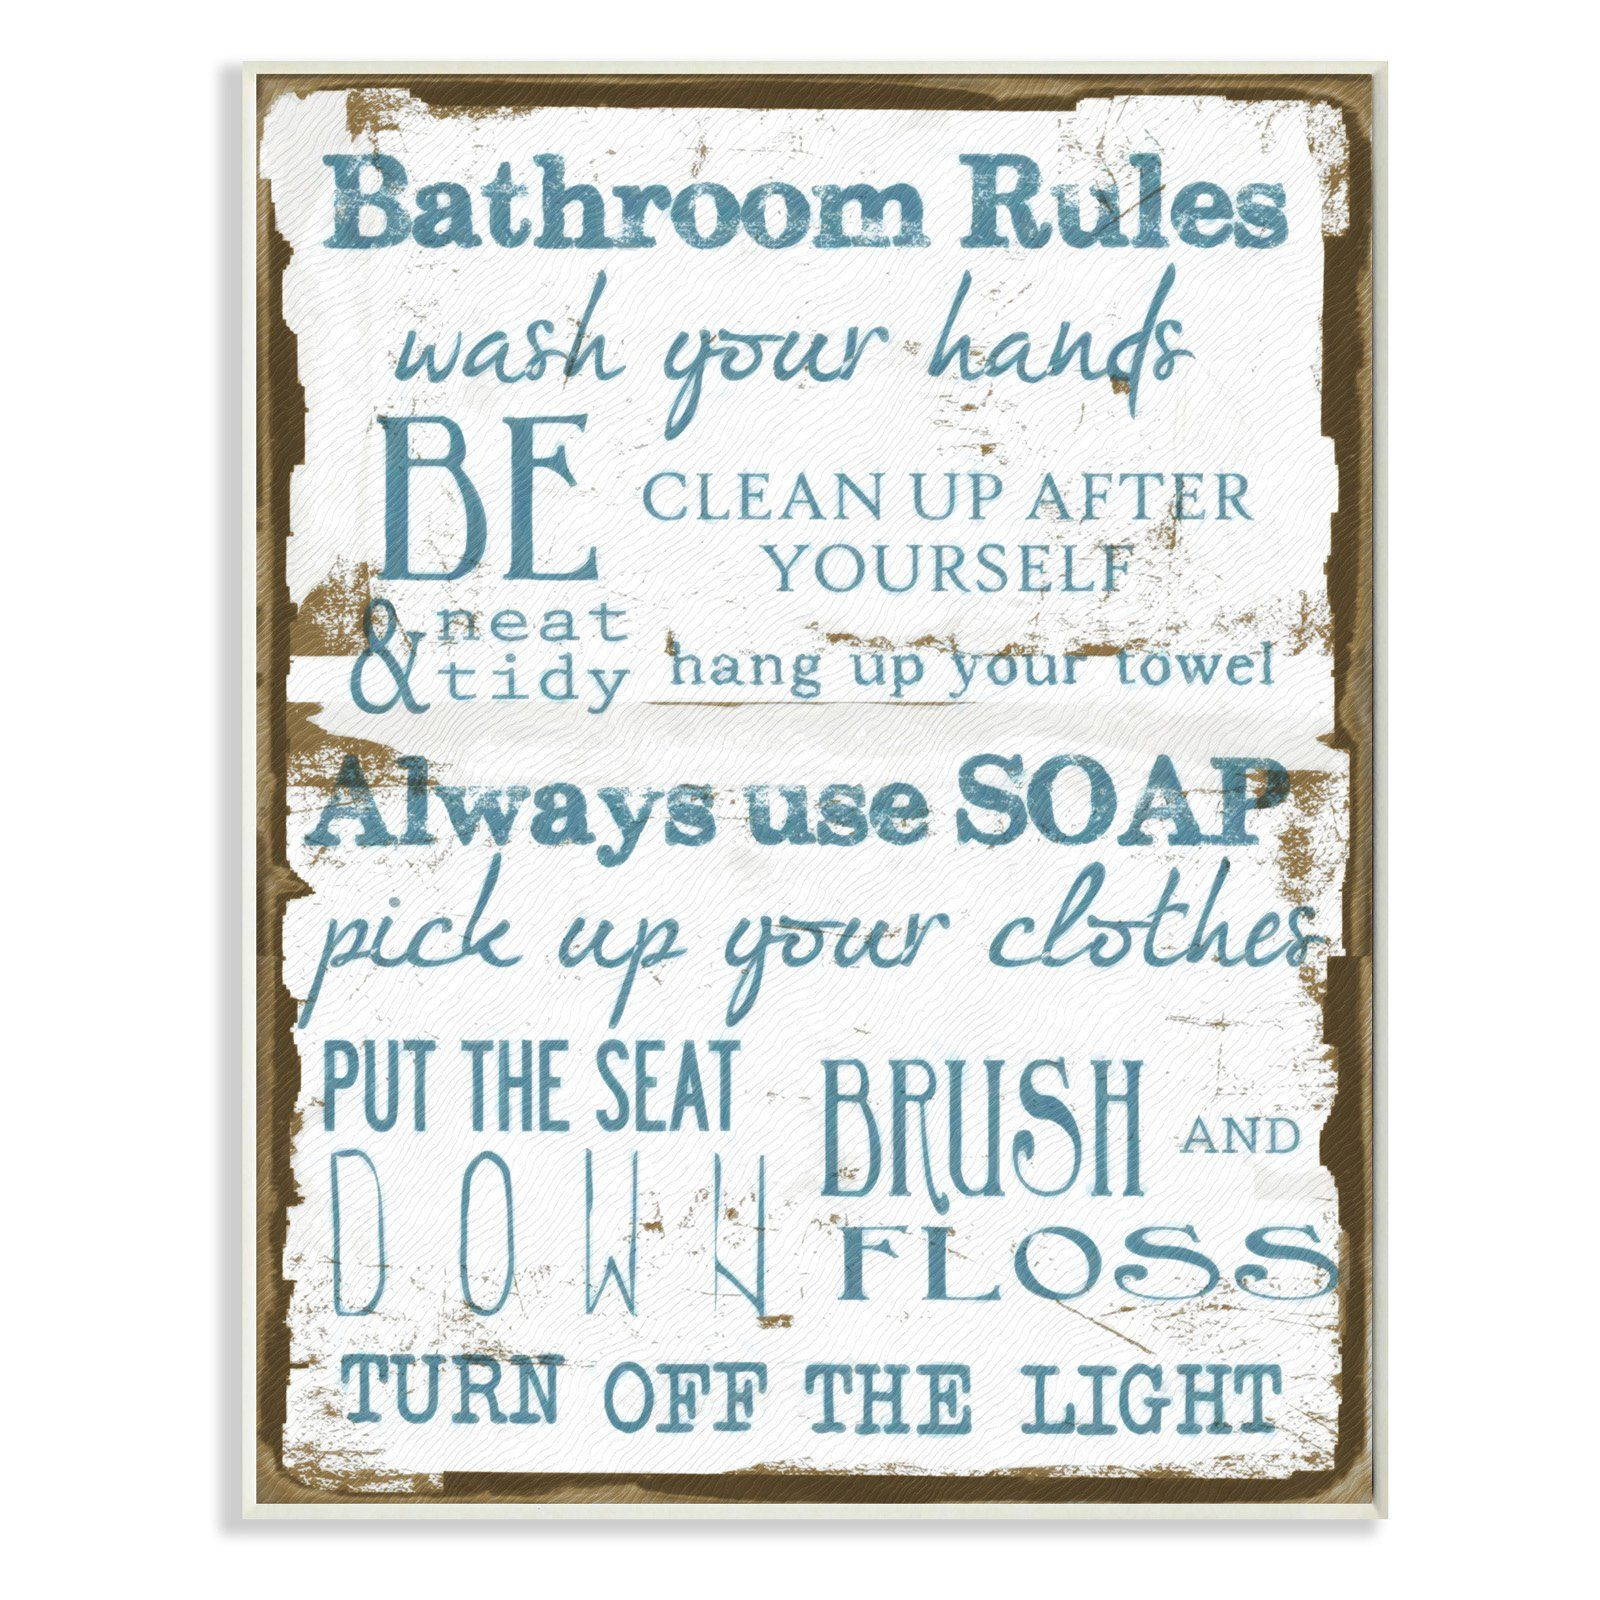 Brown and blue classic bathroom rules wall plaque art wrp